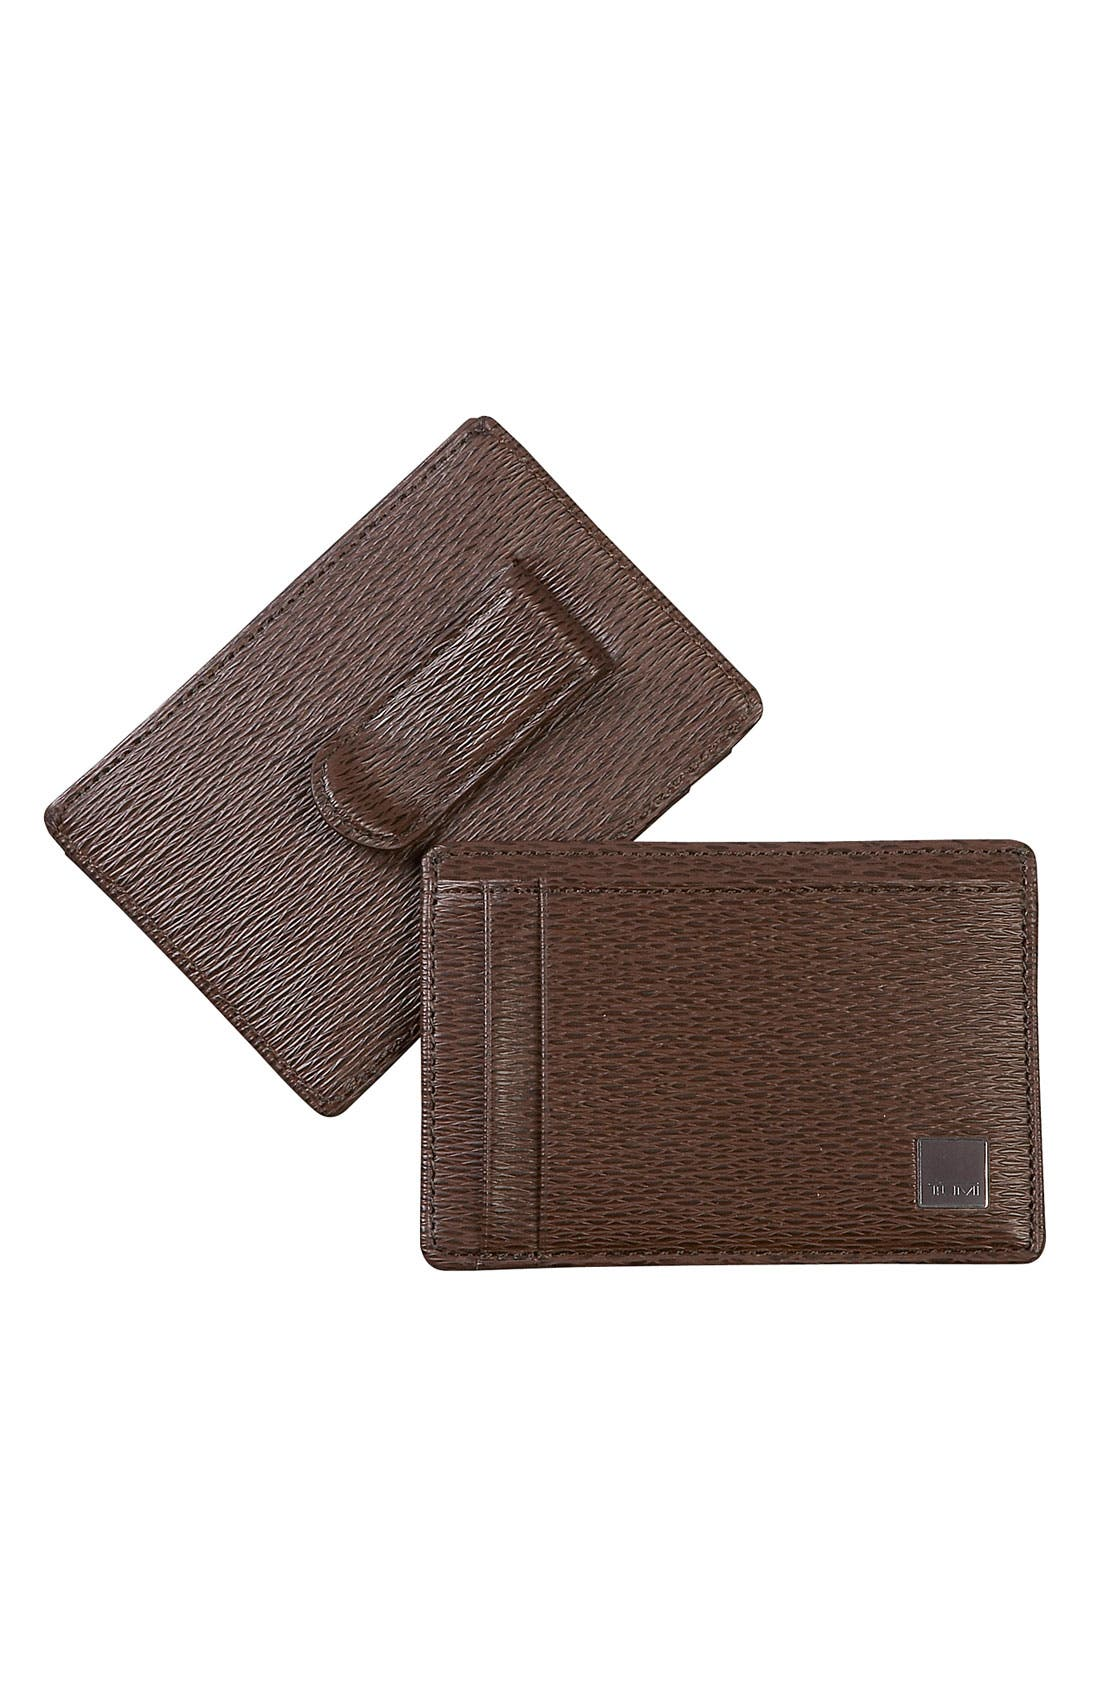 Main Image - Tumi 'Monaco' Money Clip Card Case